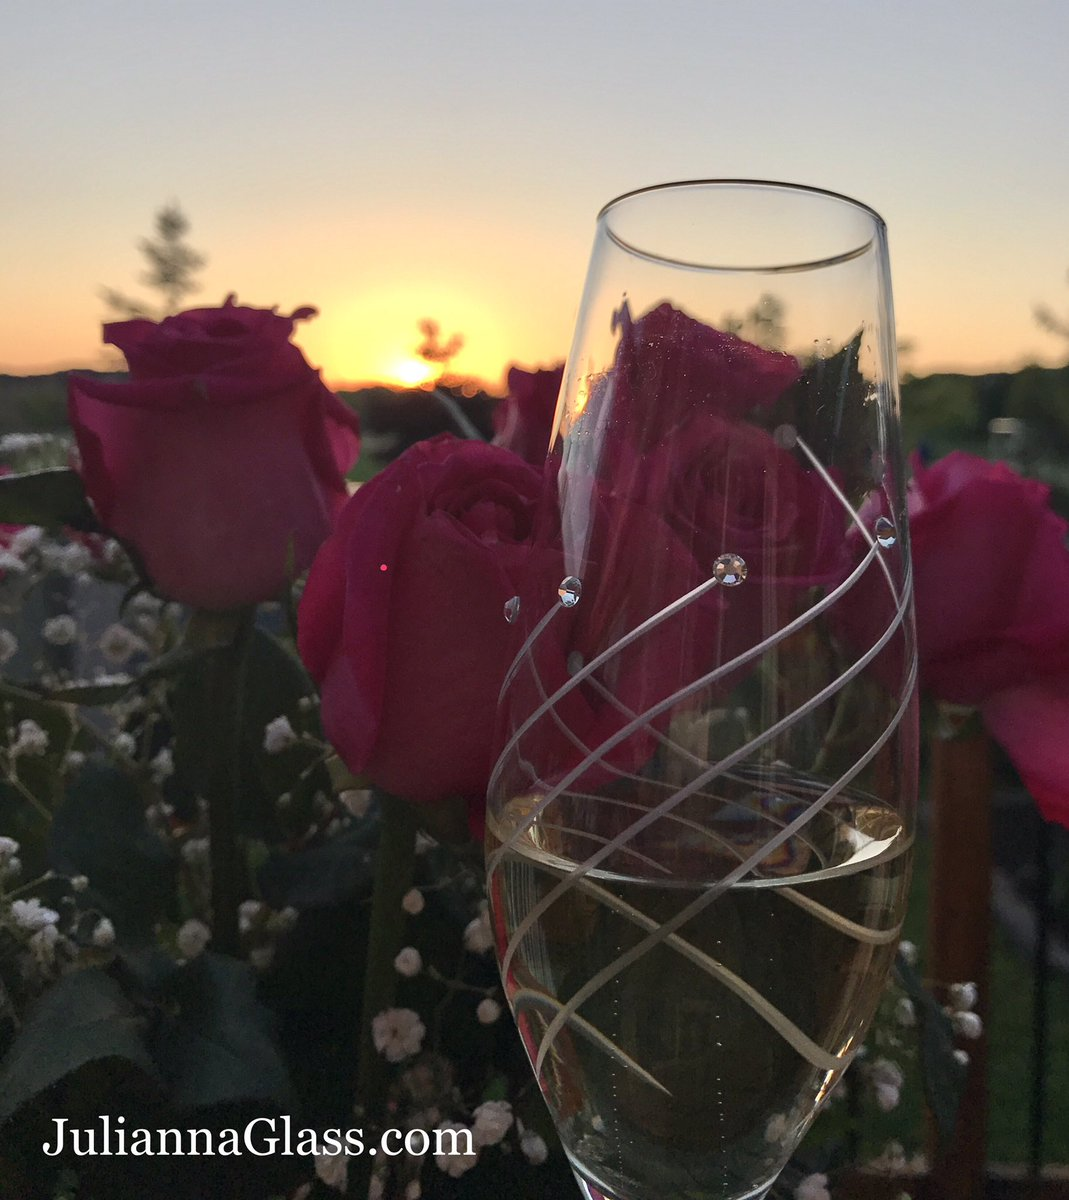 The most wonderful #SundaySunsets are happening with a glass of #champagne  over a bouquet of #pink roses  #PinkSociety #PrettyInPink<br>http://pic.twitter.com/G7DnuDK8H8